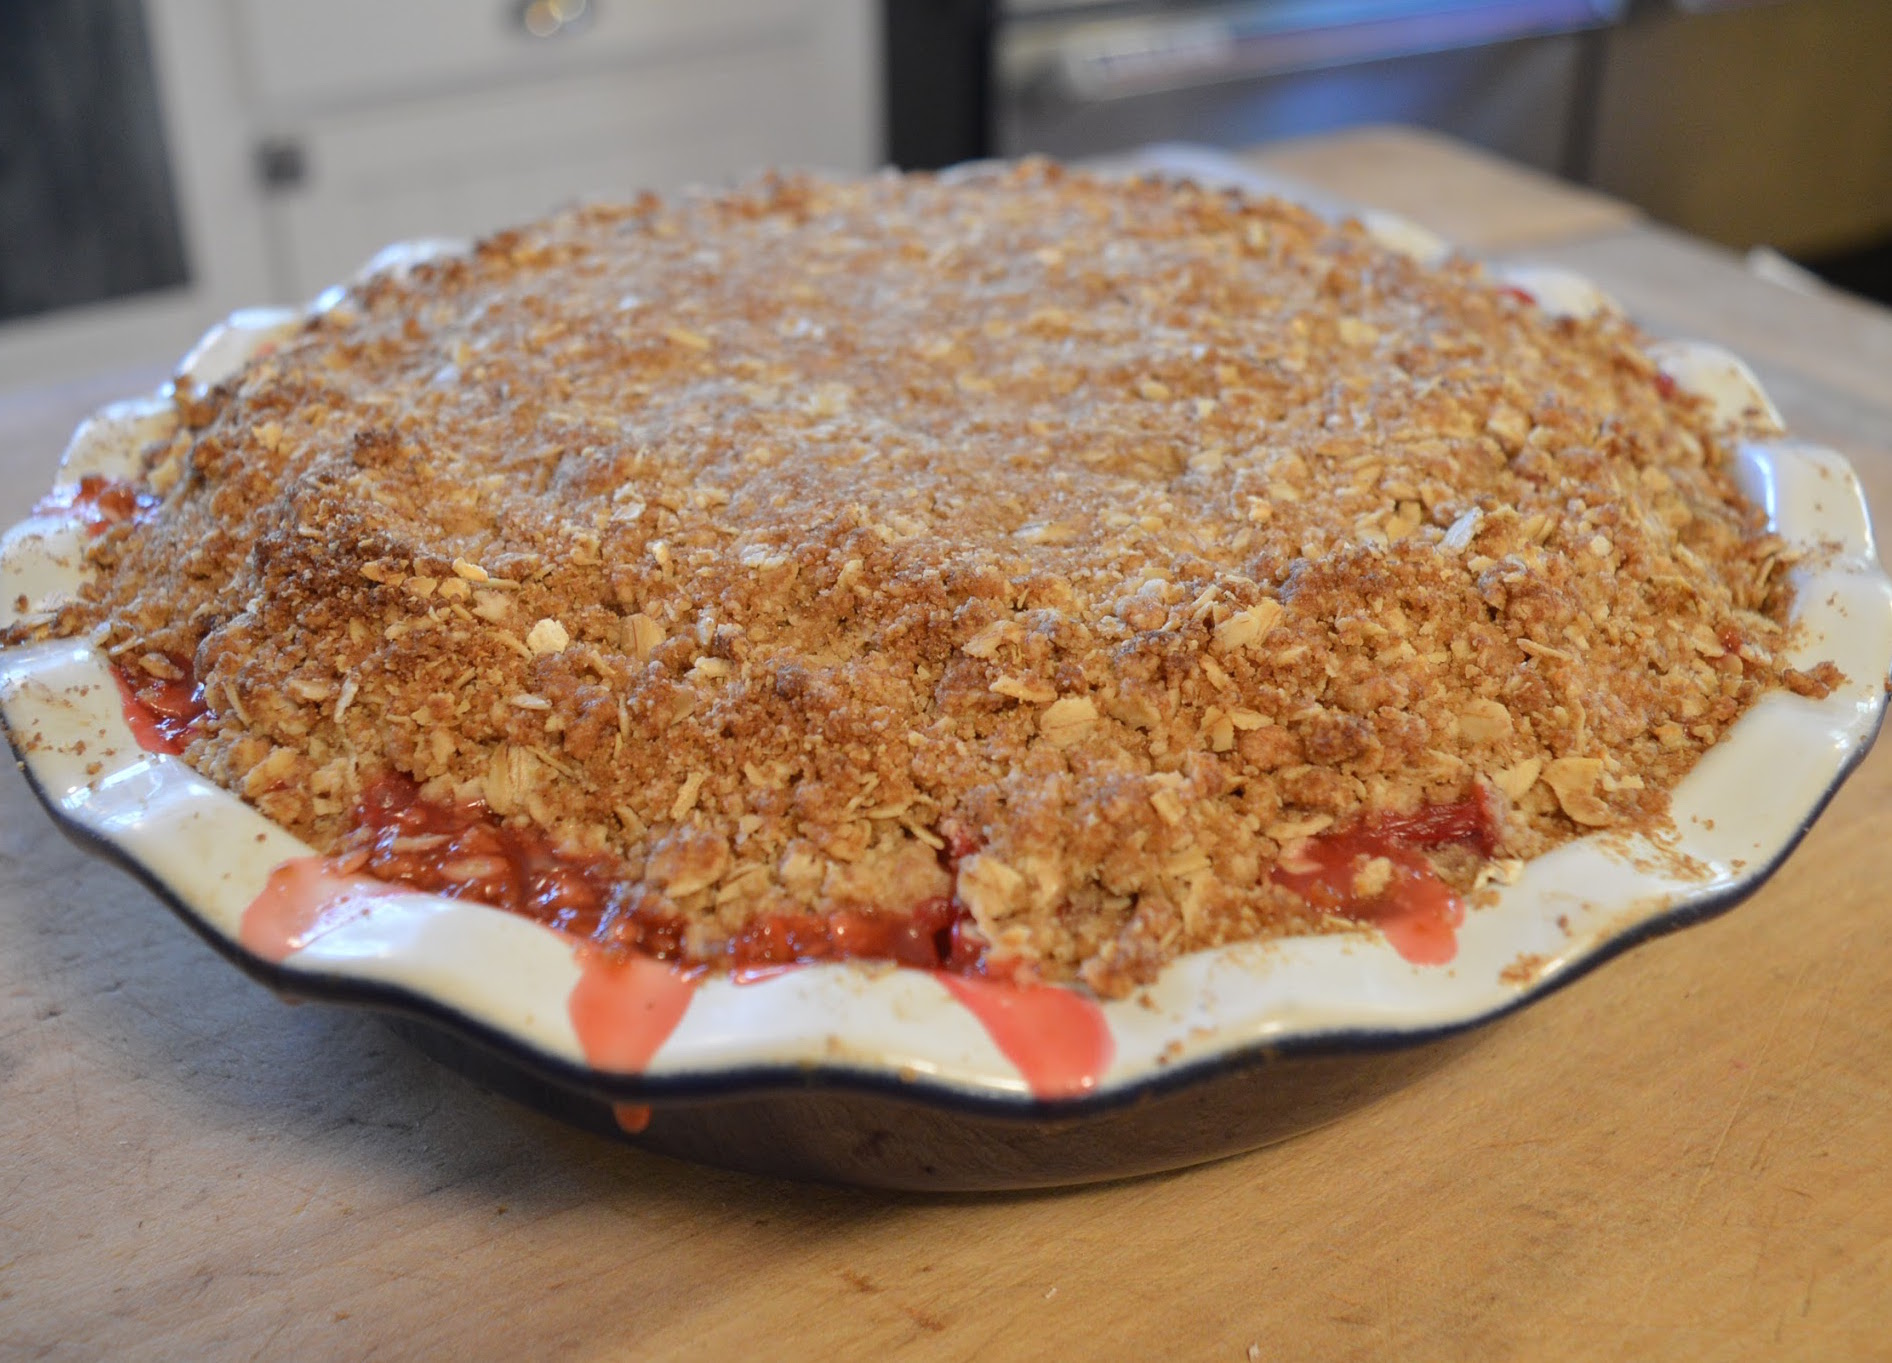 Crumble in kitchen crop